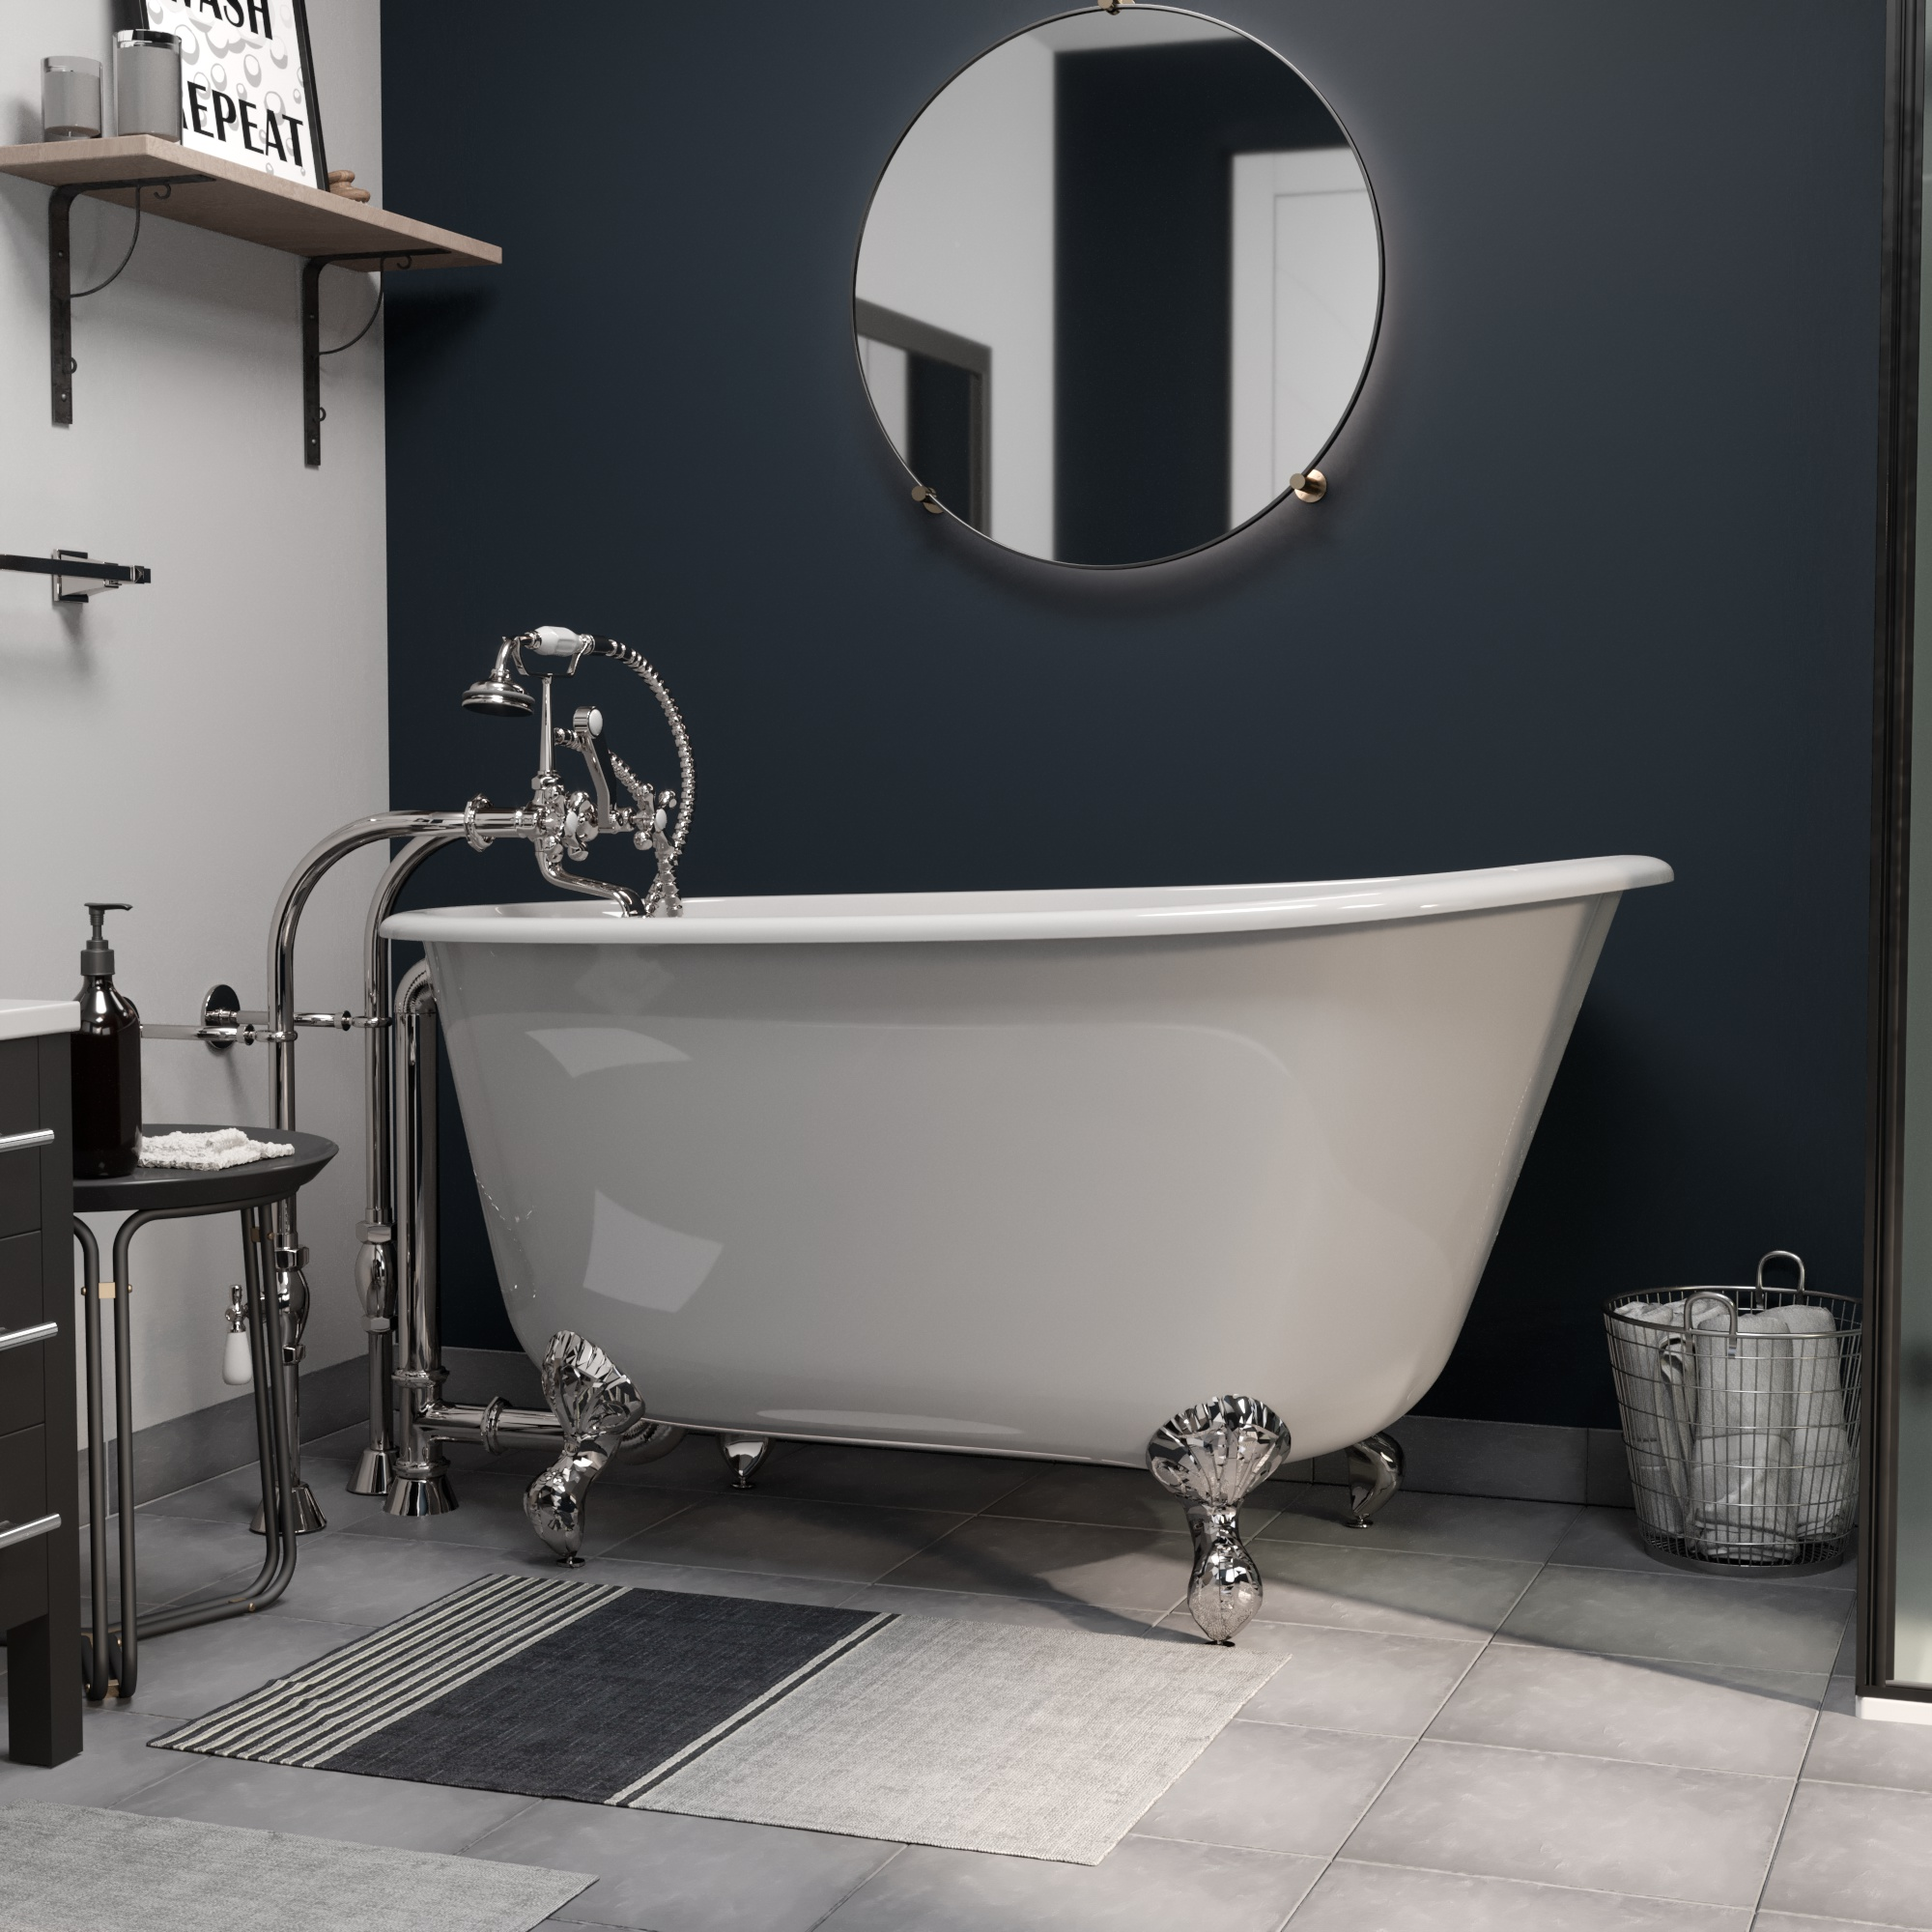 """Cast Iron Swedish Slipper Tub 54"""" X 30"""" with No Faucet Drillings and Complete Free Standing British Telephone Faucet and Hand Held Shower  Polished Chrome Plumbing Package"""